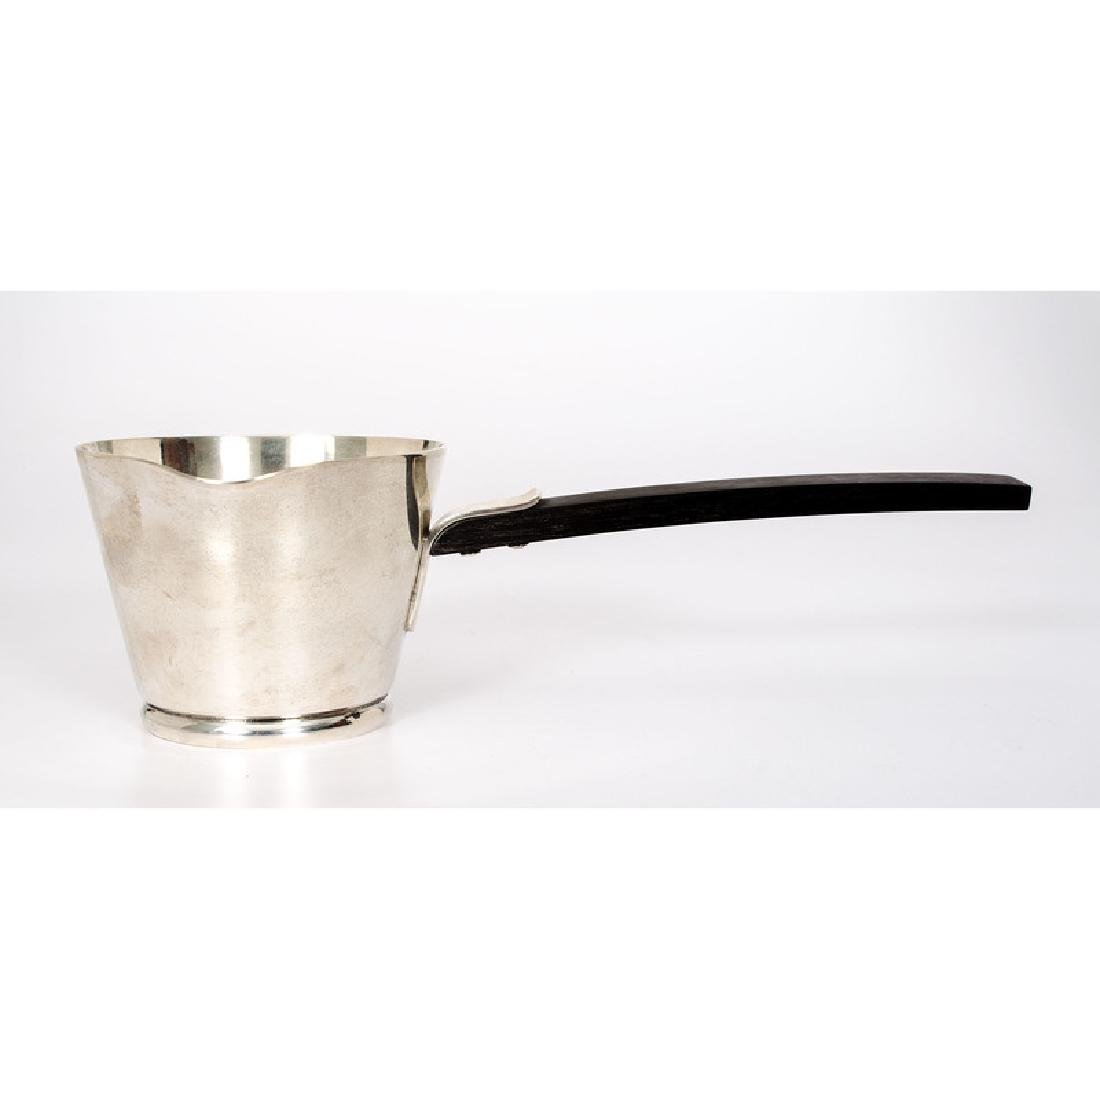 Allan Adler  Sterling and Ebony Sauce Server,  Town